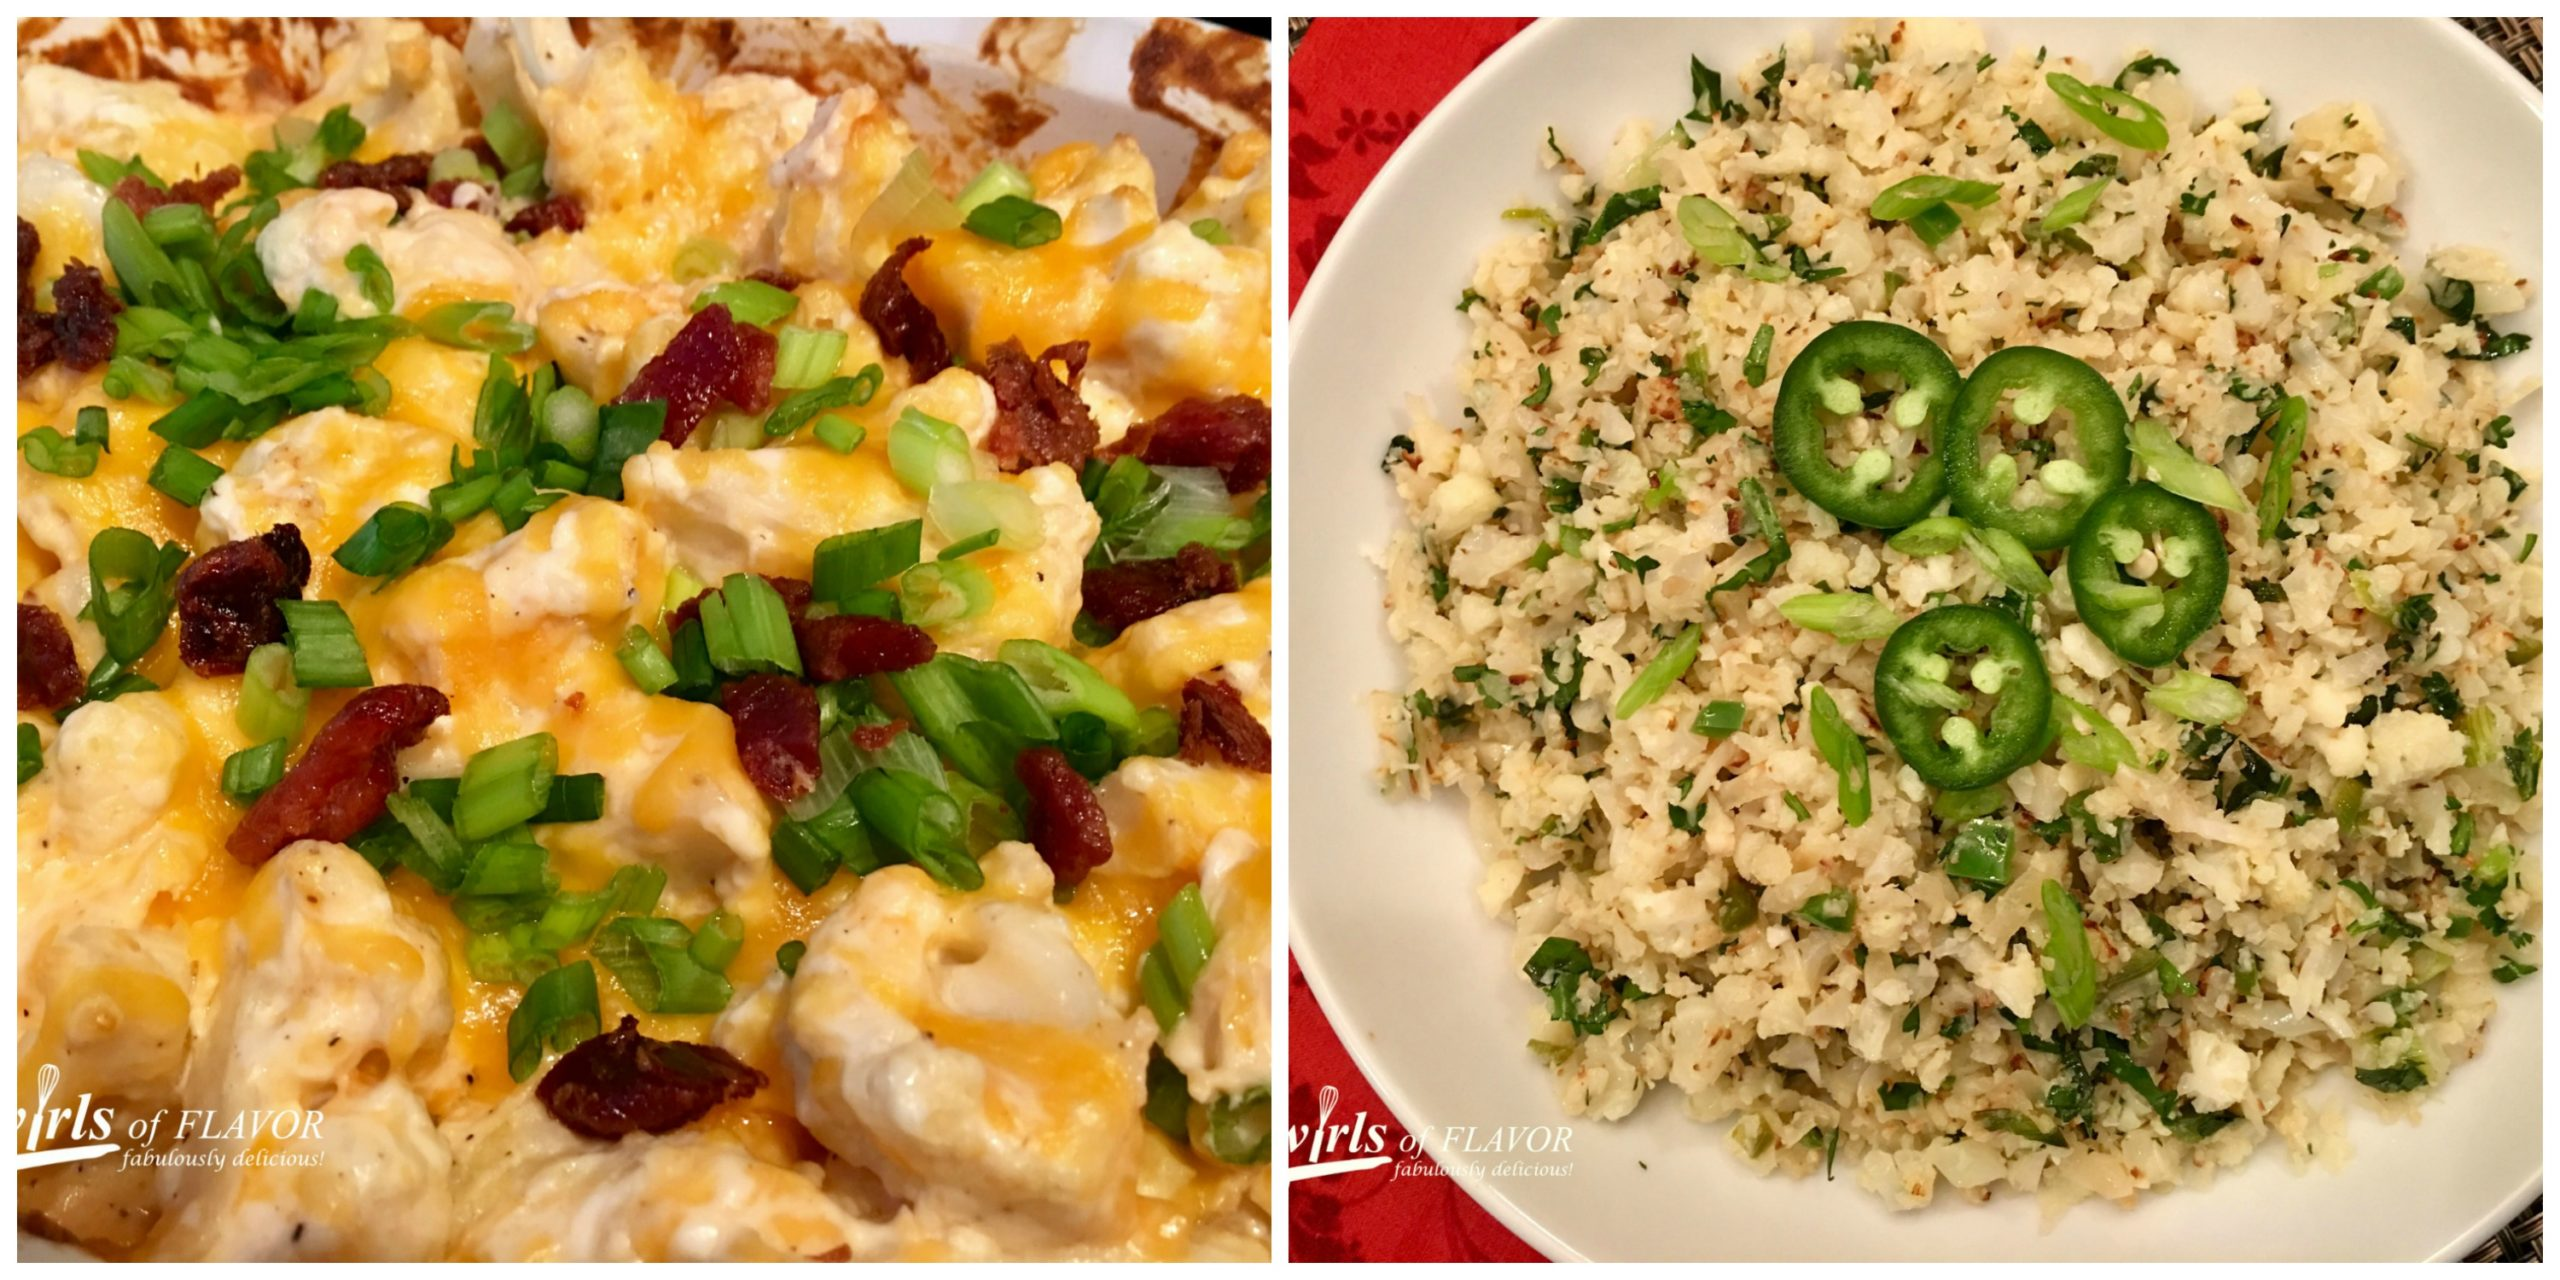 Loaded Cauliflower Casserole and Jalapeno Lime Cauliflower Rice